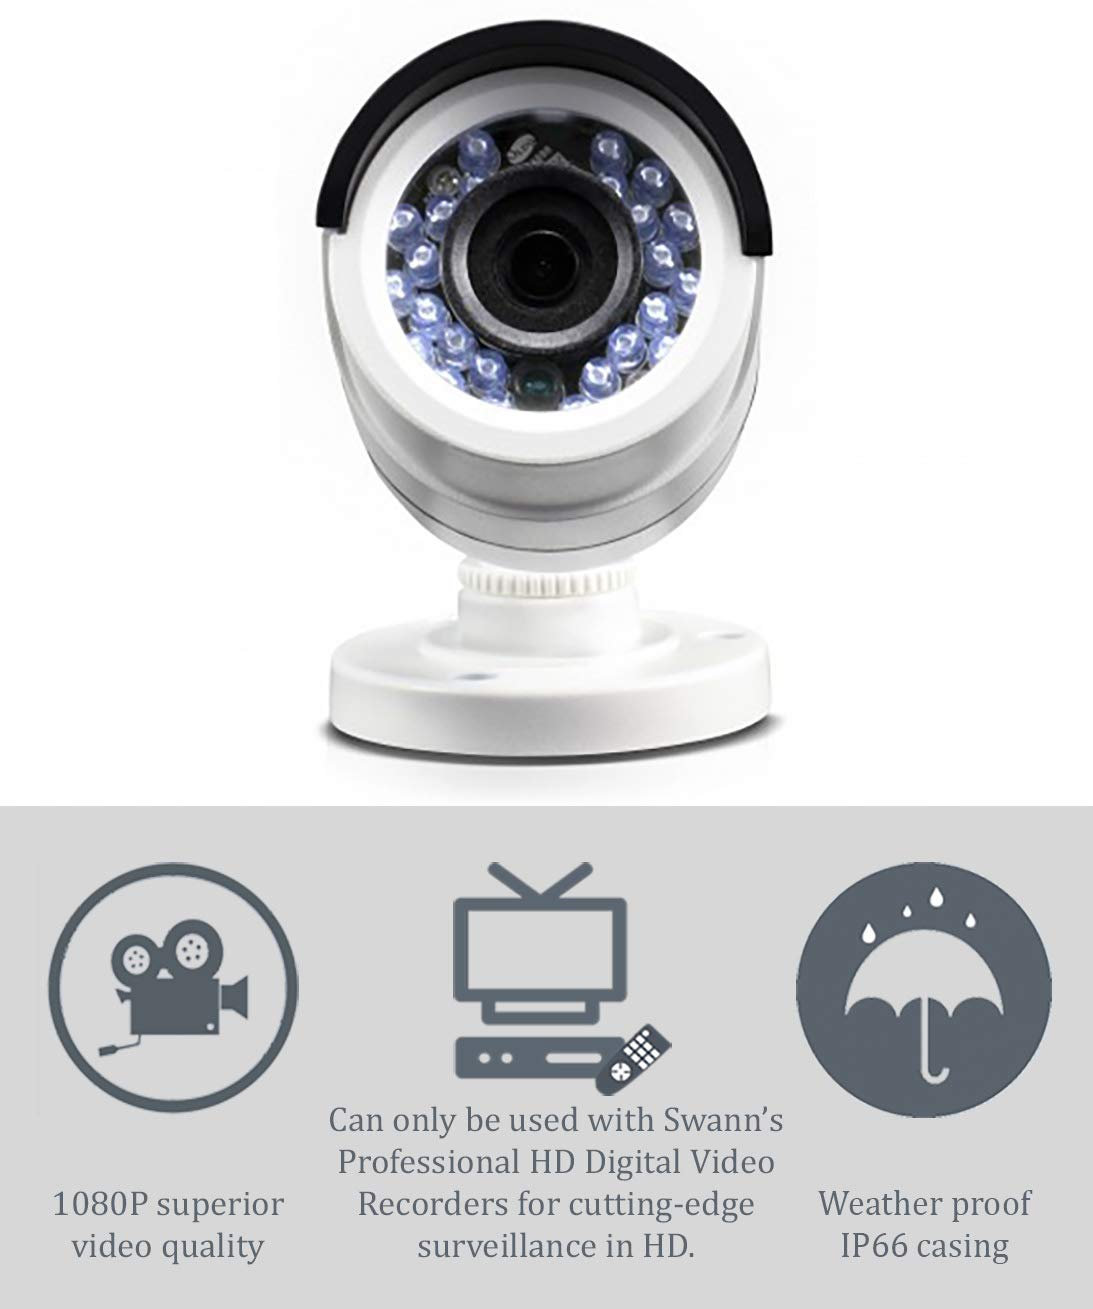 Swann PRO-T852 1080p Multi-Purpose Day/Night Security Camera with Night Vision up to 100 ft / 3m - 4-Pack by Swann (Image #2)